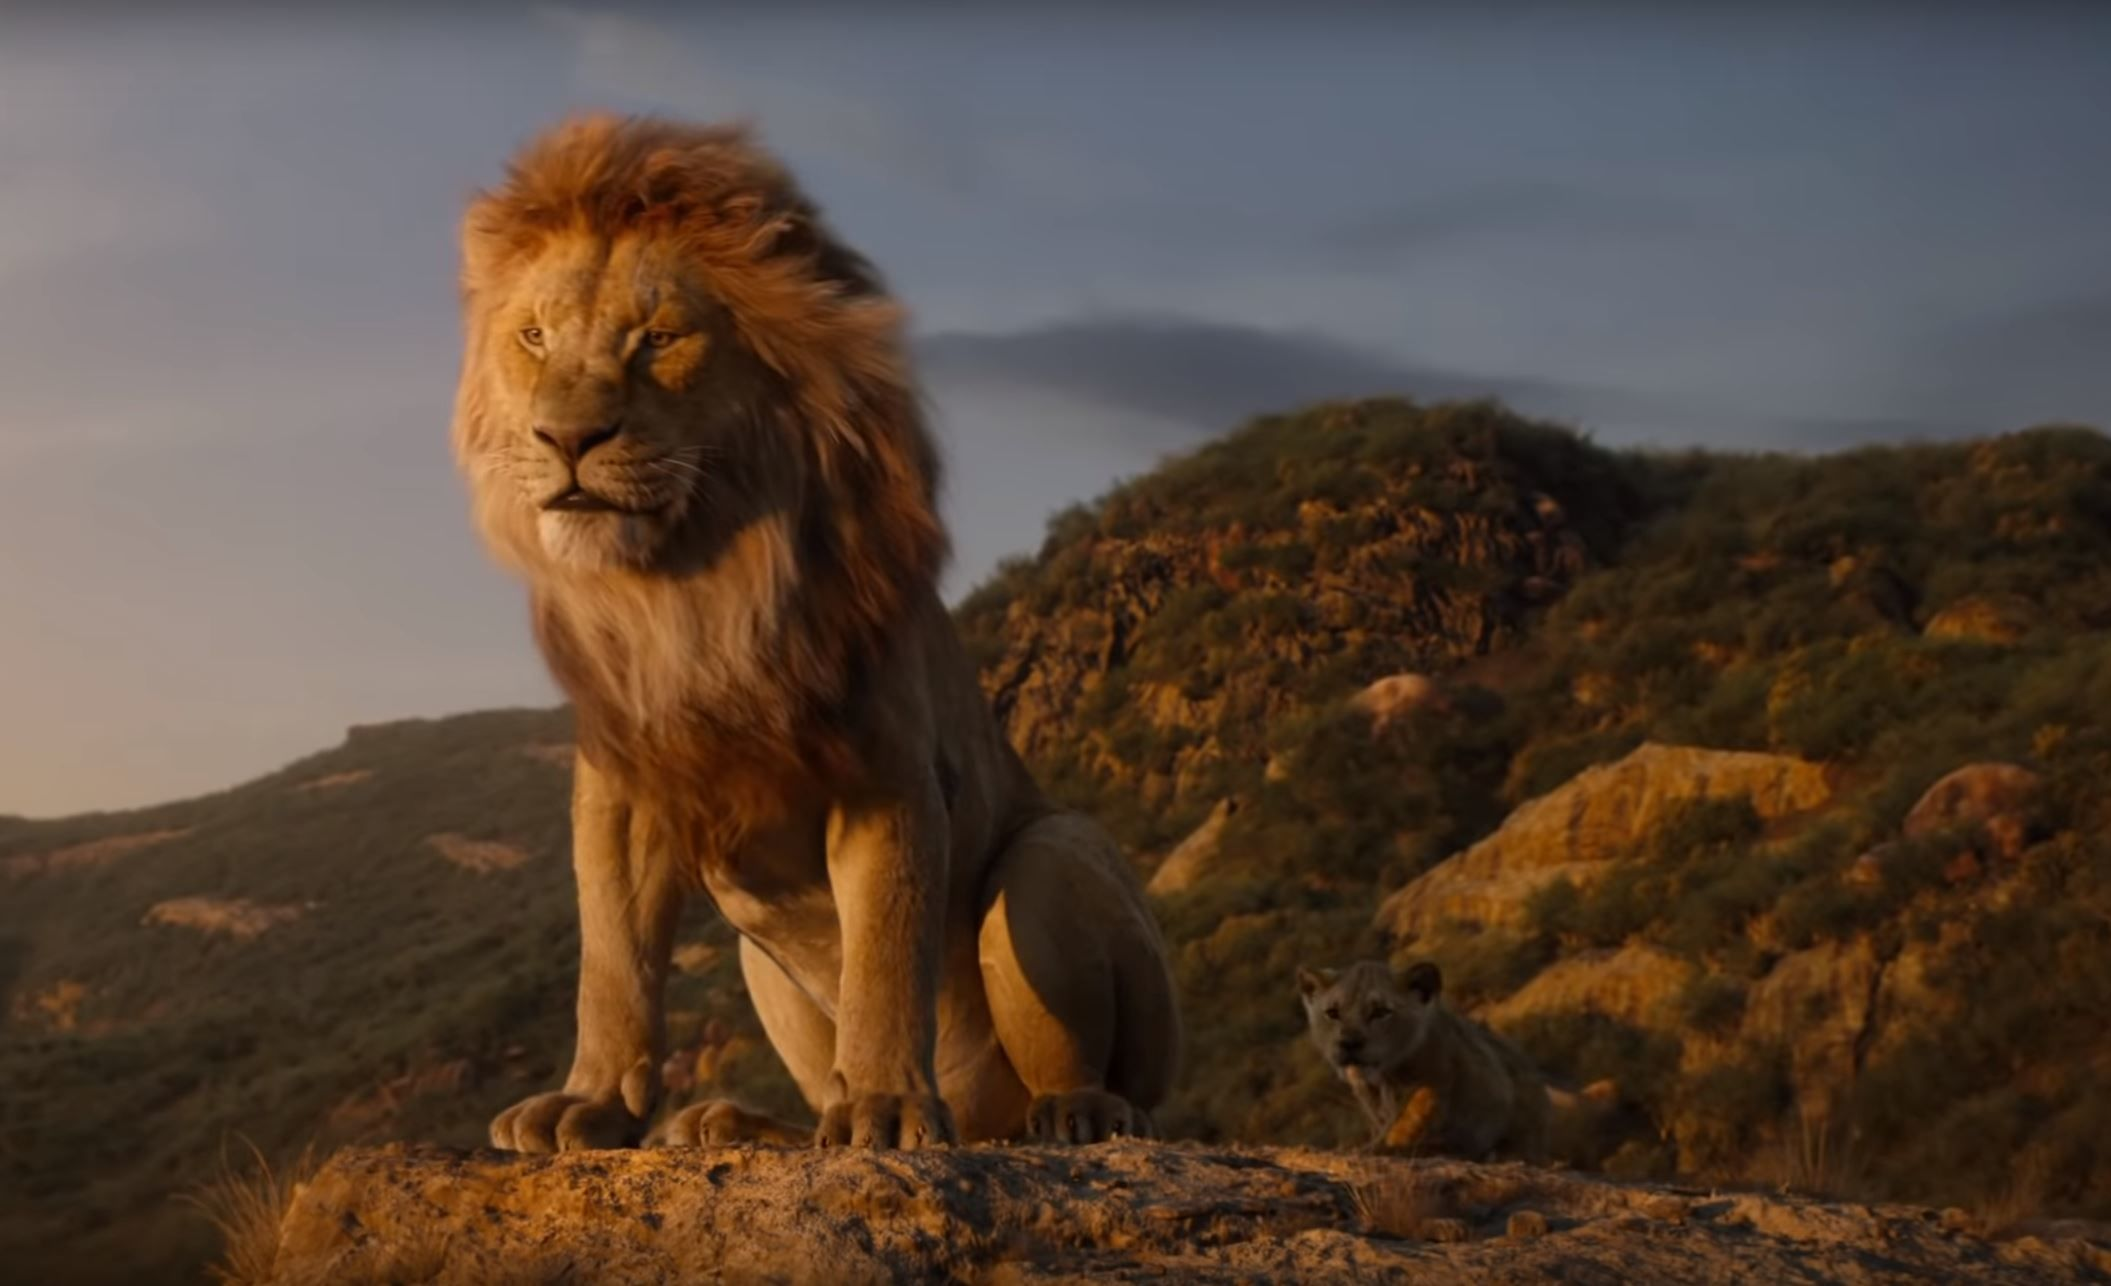 column   u2018lion king u2019 trailer could signal disney u2019s best live